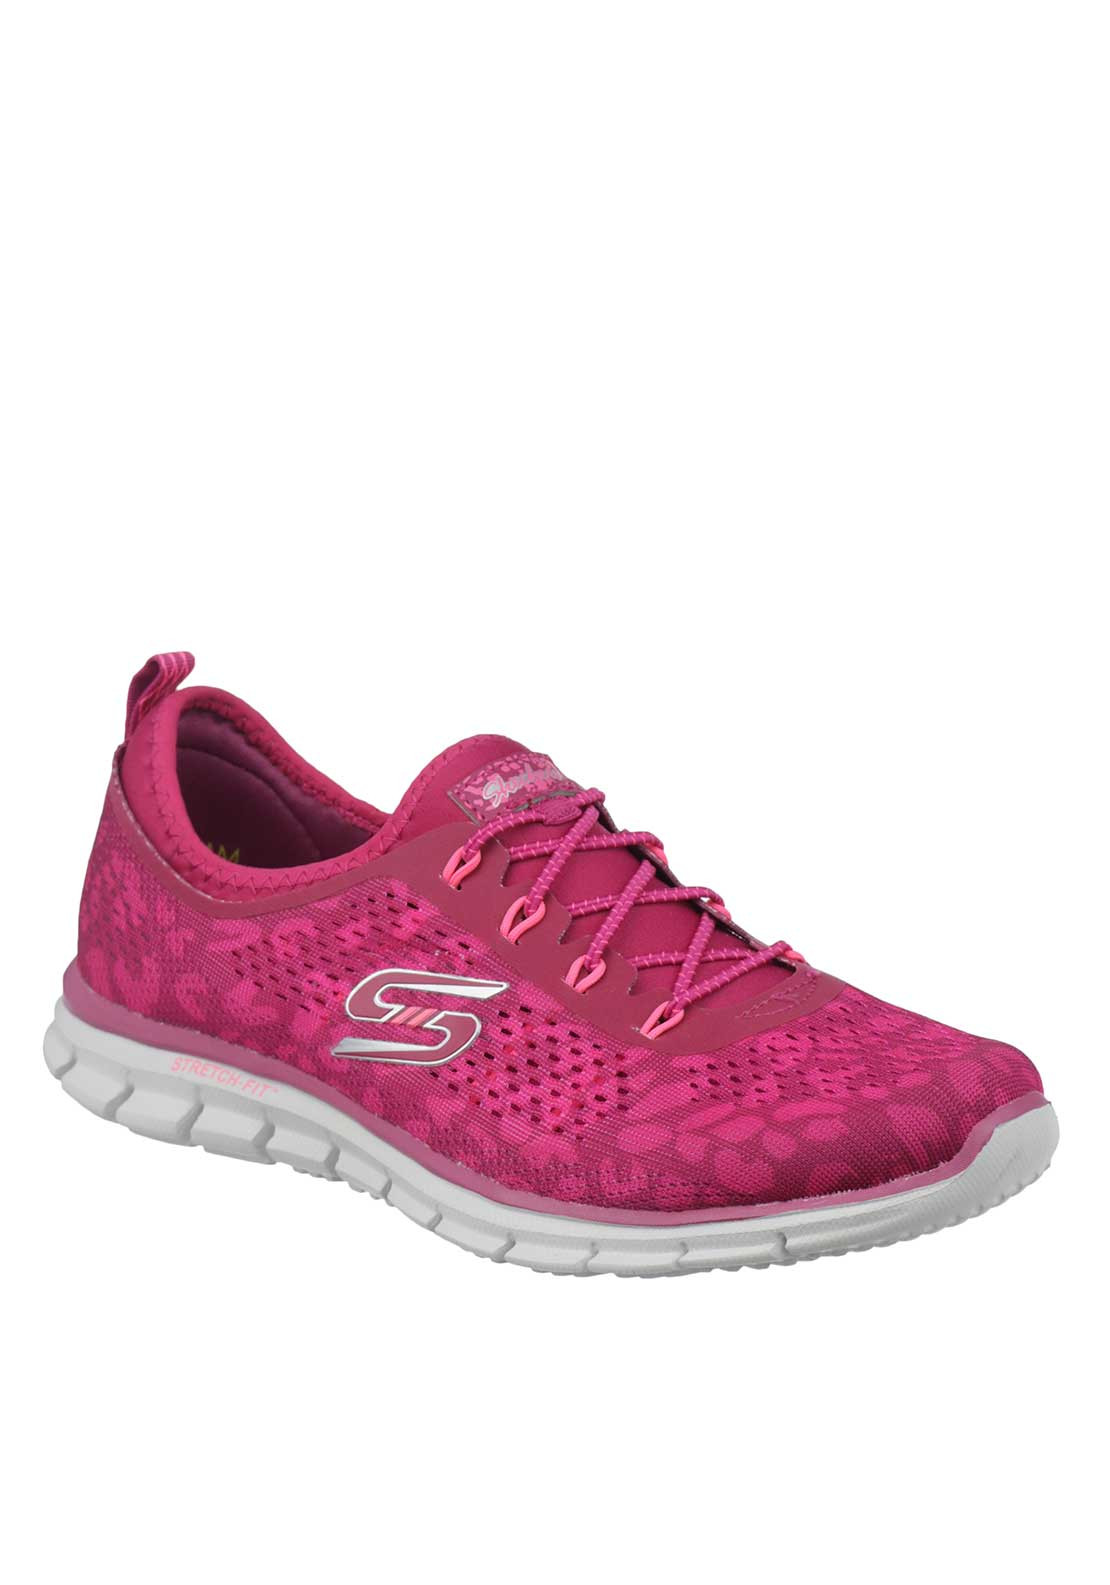 Skechers Knit Memory Foam Slip On Trainers, Pink